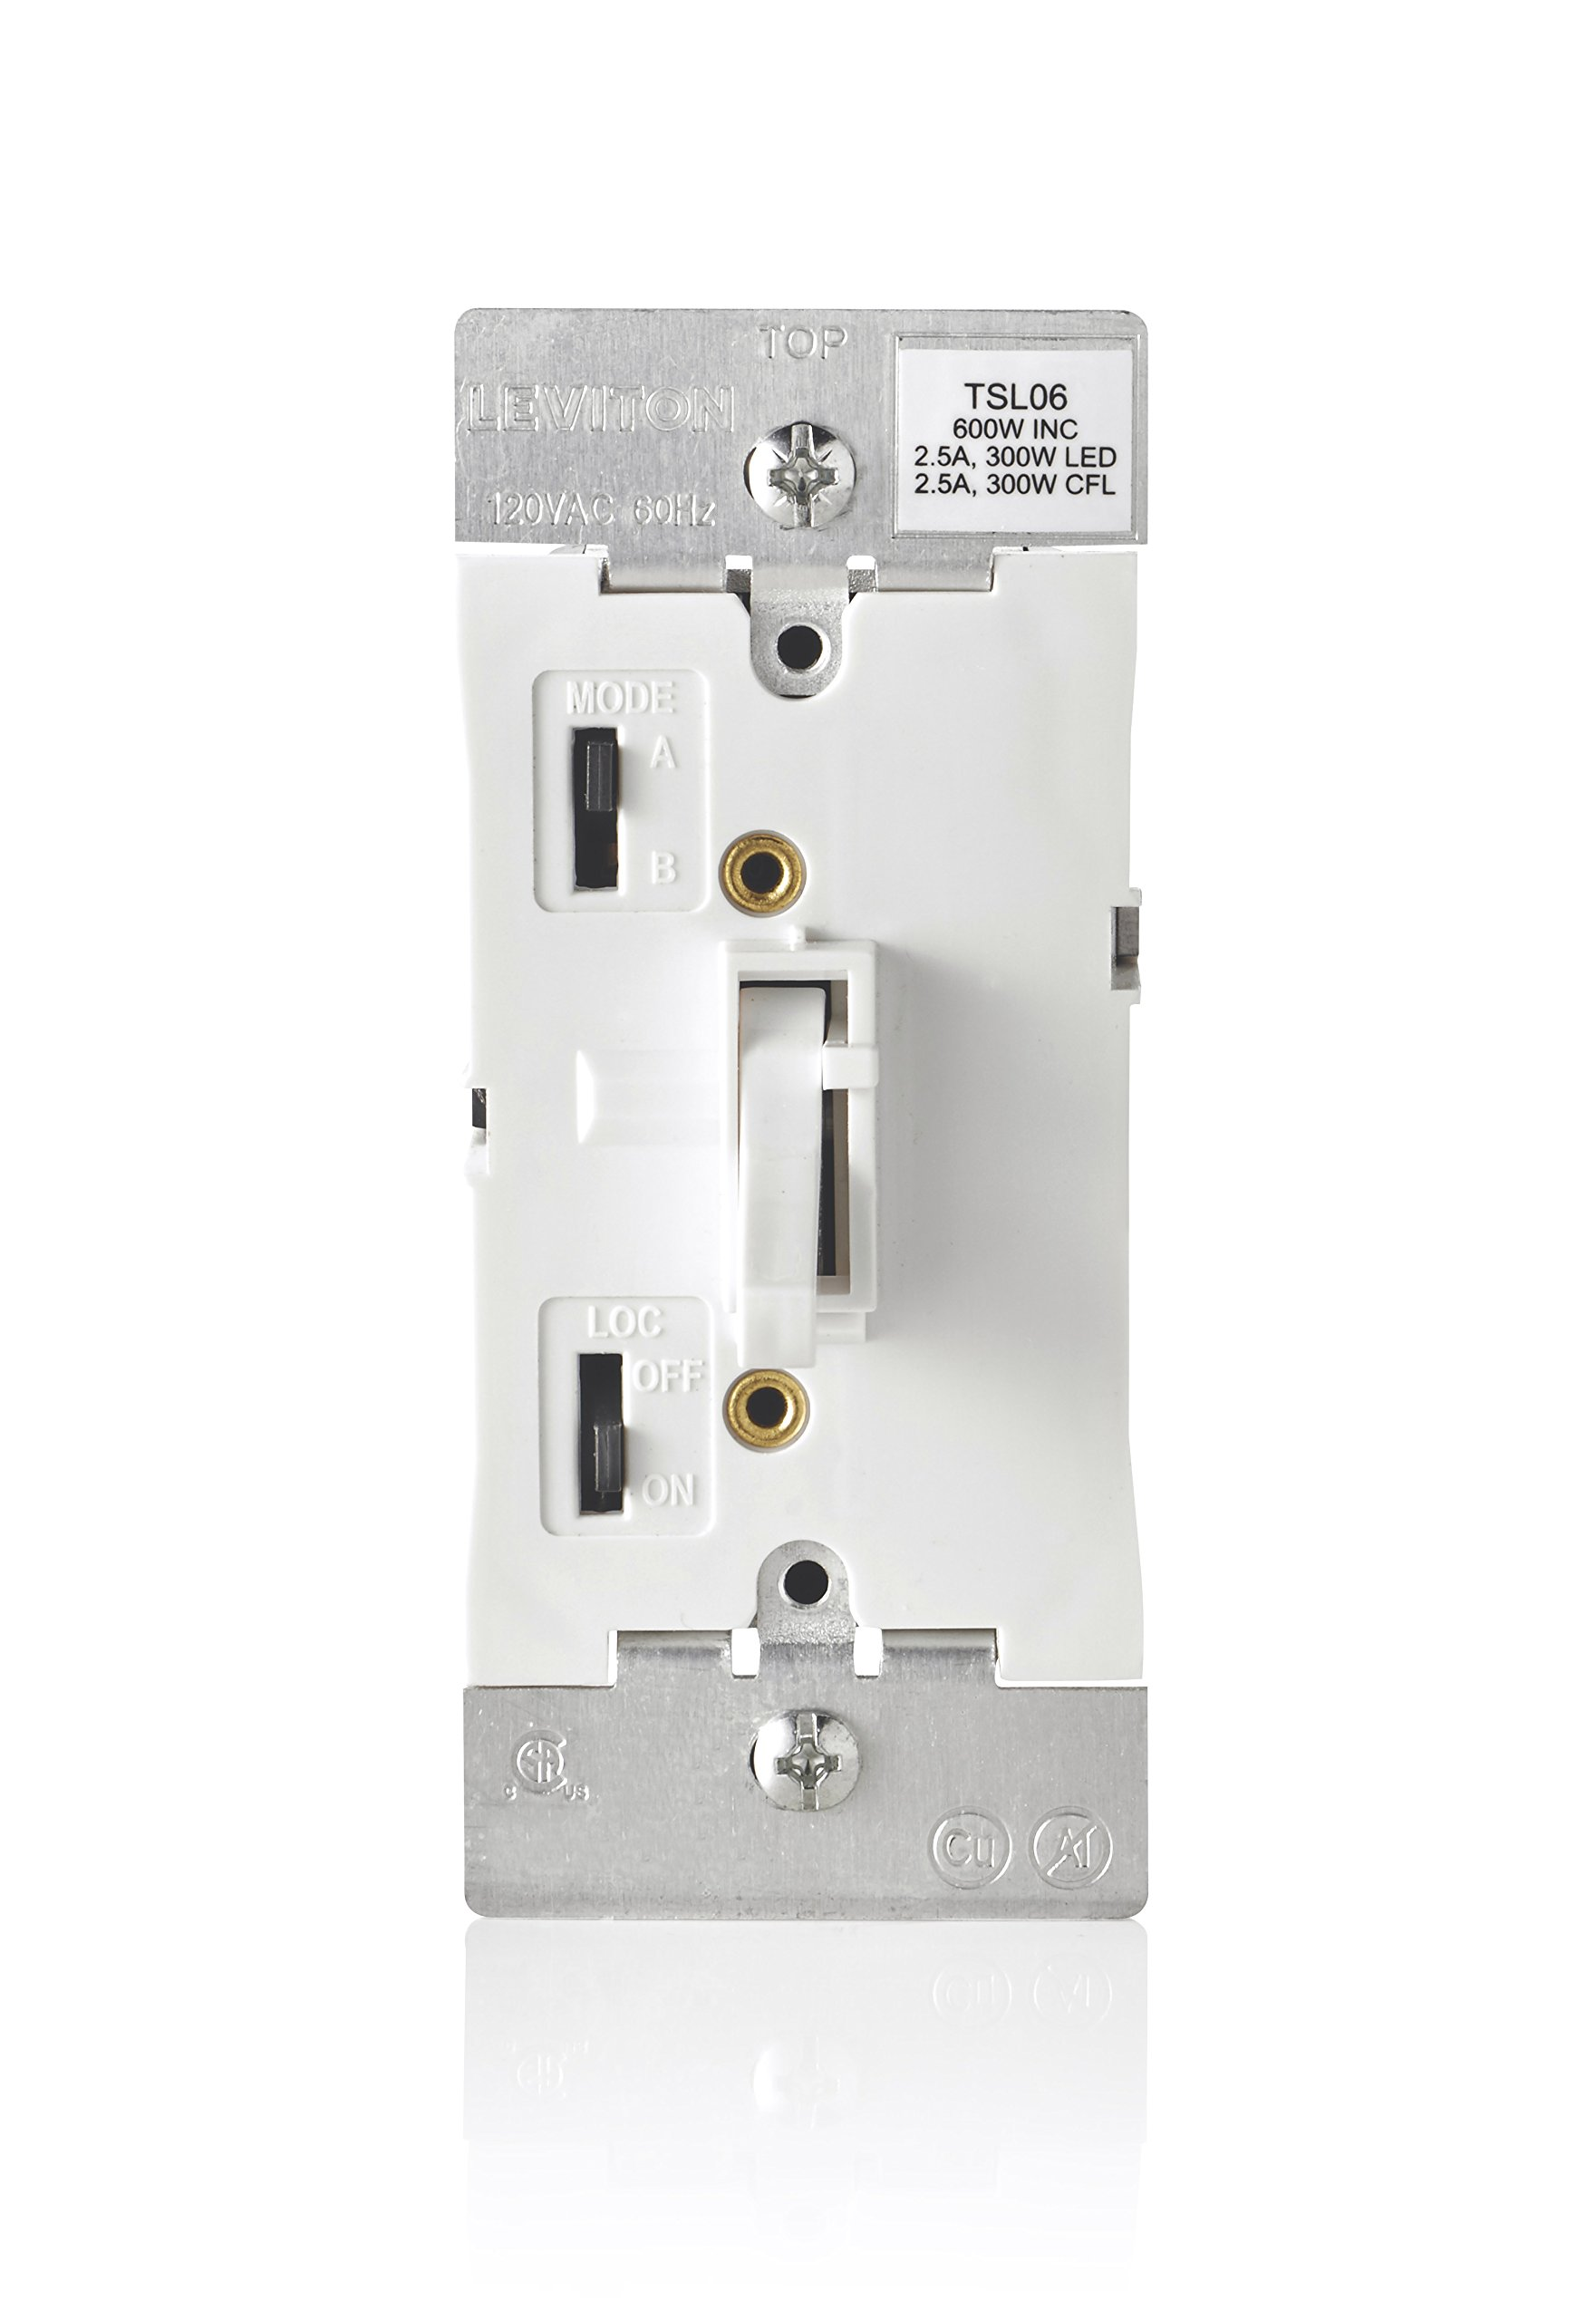 Leviton TSL06-1LW Toggle Slide Universal Dimmer, 300-Watt Dimmable LED and CFL, 600-Watt Incandescent and Halogen for Single Pole or 3-way, with locator light, 1 pack, White by Leviton